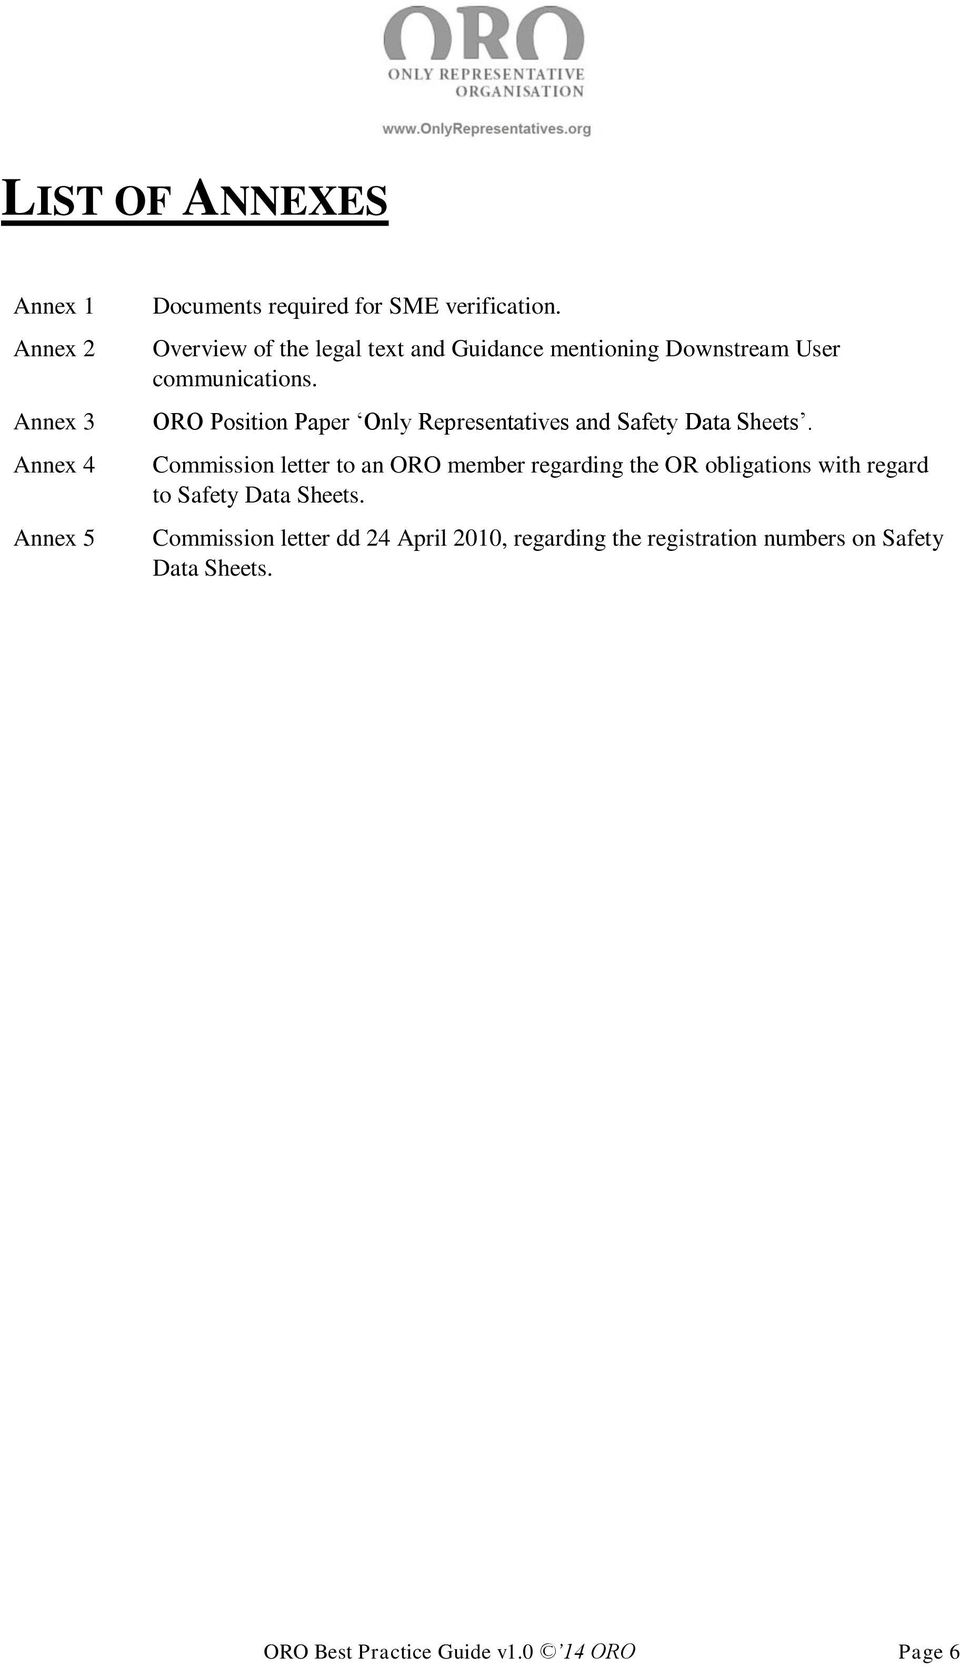 ORO Position Paper Only Representatives and Safety Data Sheets.